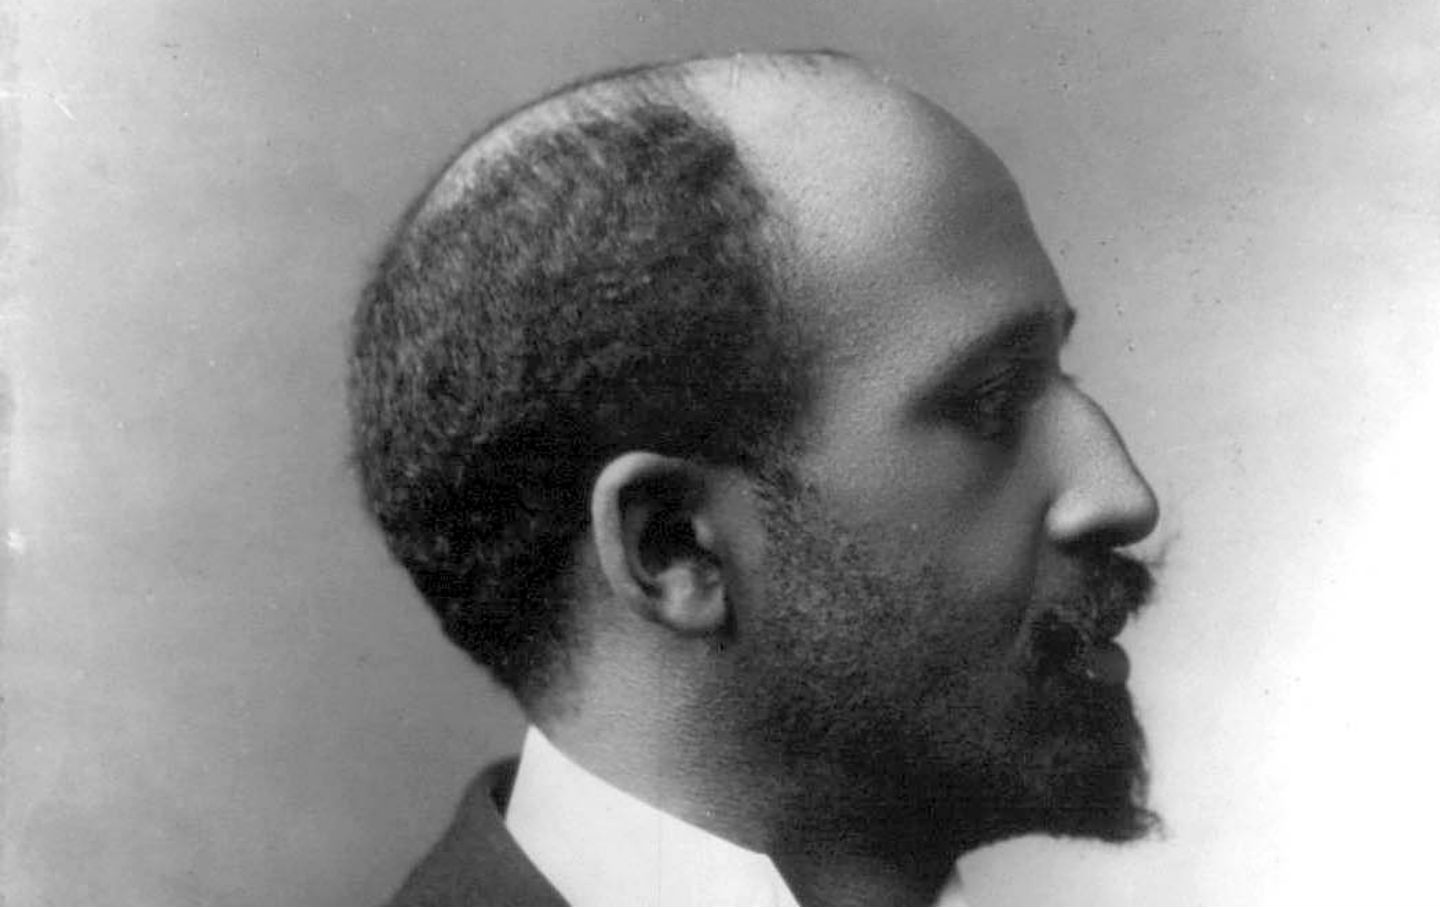 dubois essay w.e.b Free essay: booker t washington and web dubois offered different strategies for dealing with the problems of poverty and discriminations faced by black.